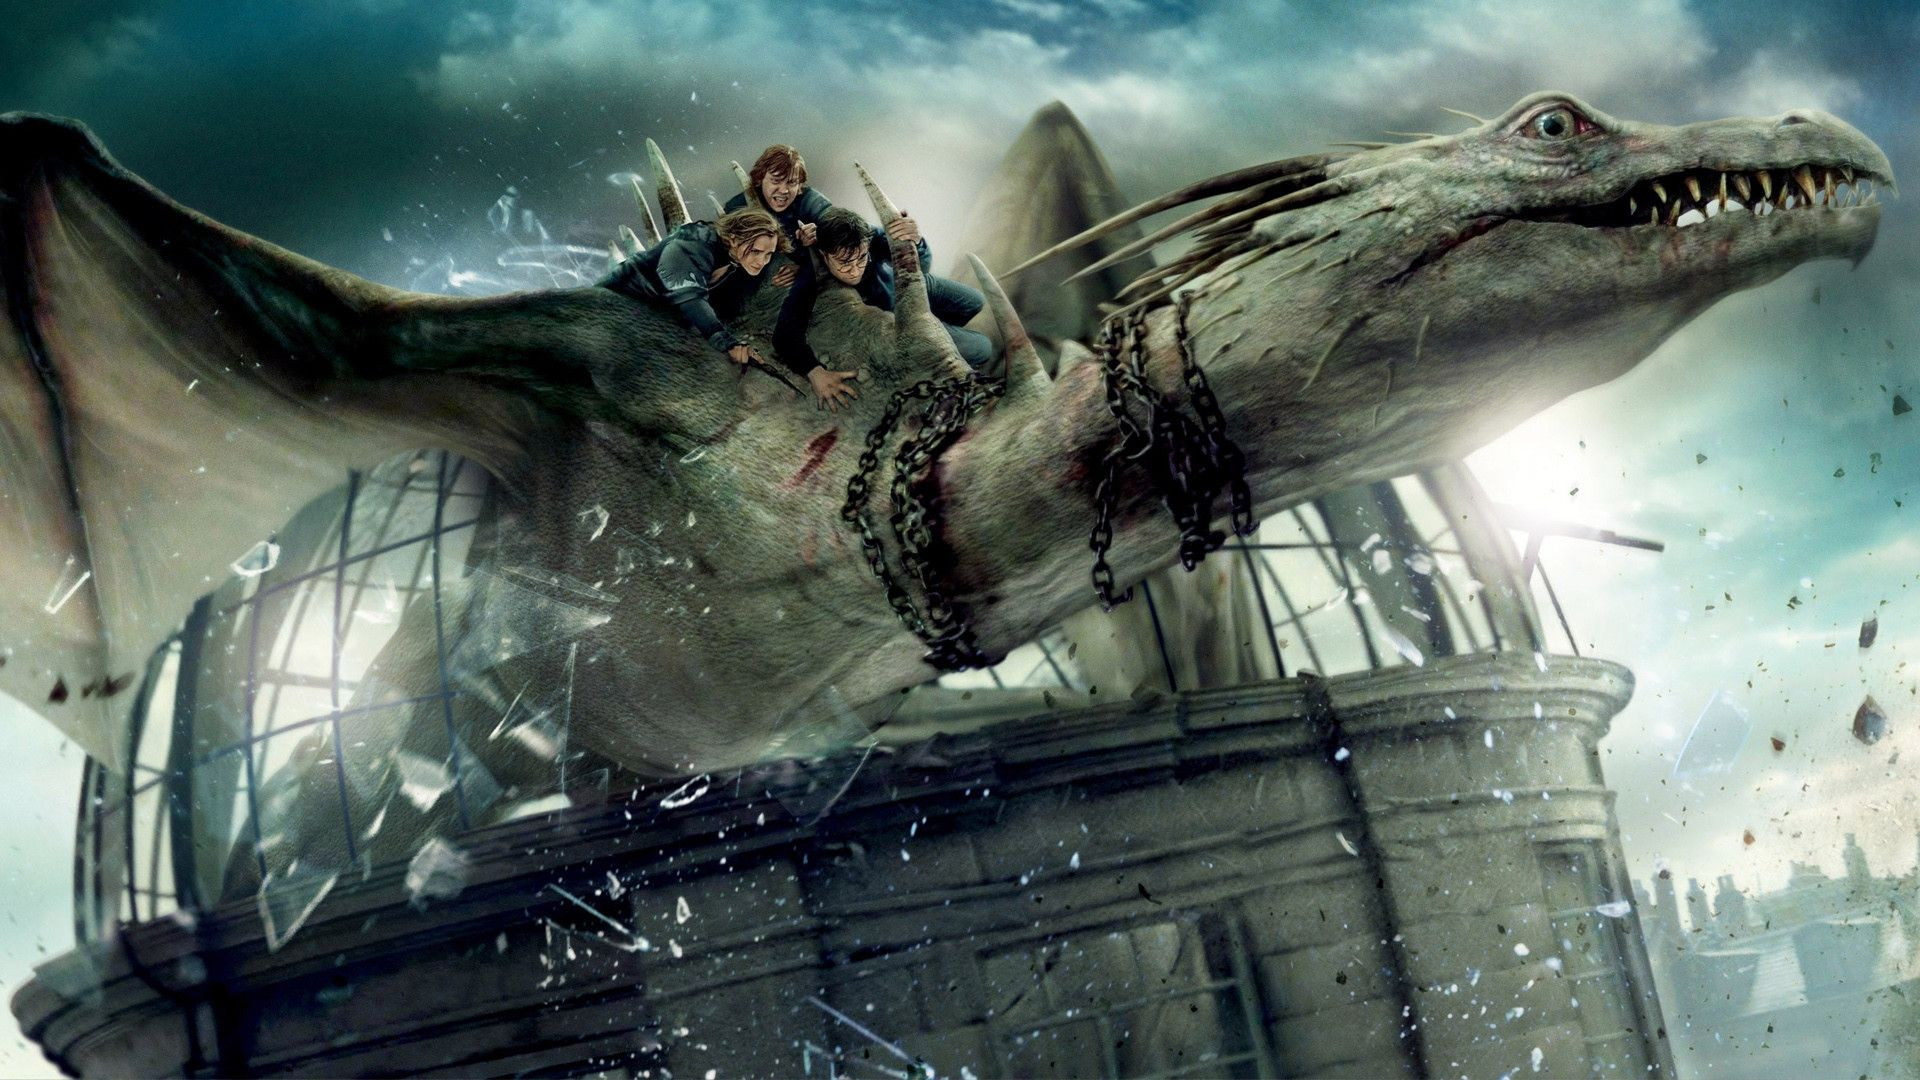 1920x1080 7 Harry Potter Wallpaper7 600x338 Harry Potter Dragon Fantastic Beasts And Where Harry Potter Poster